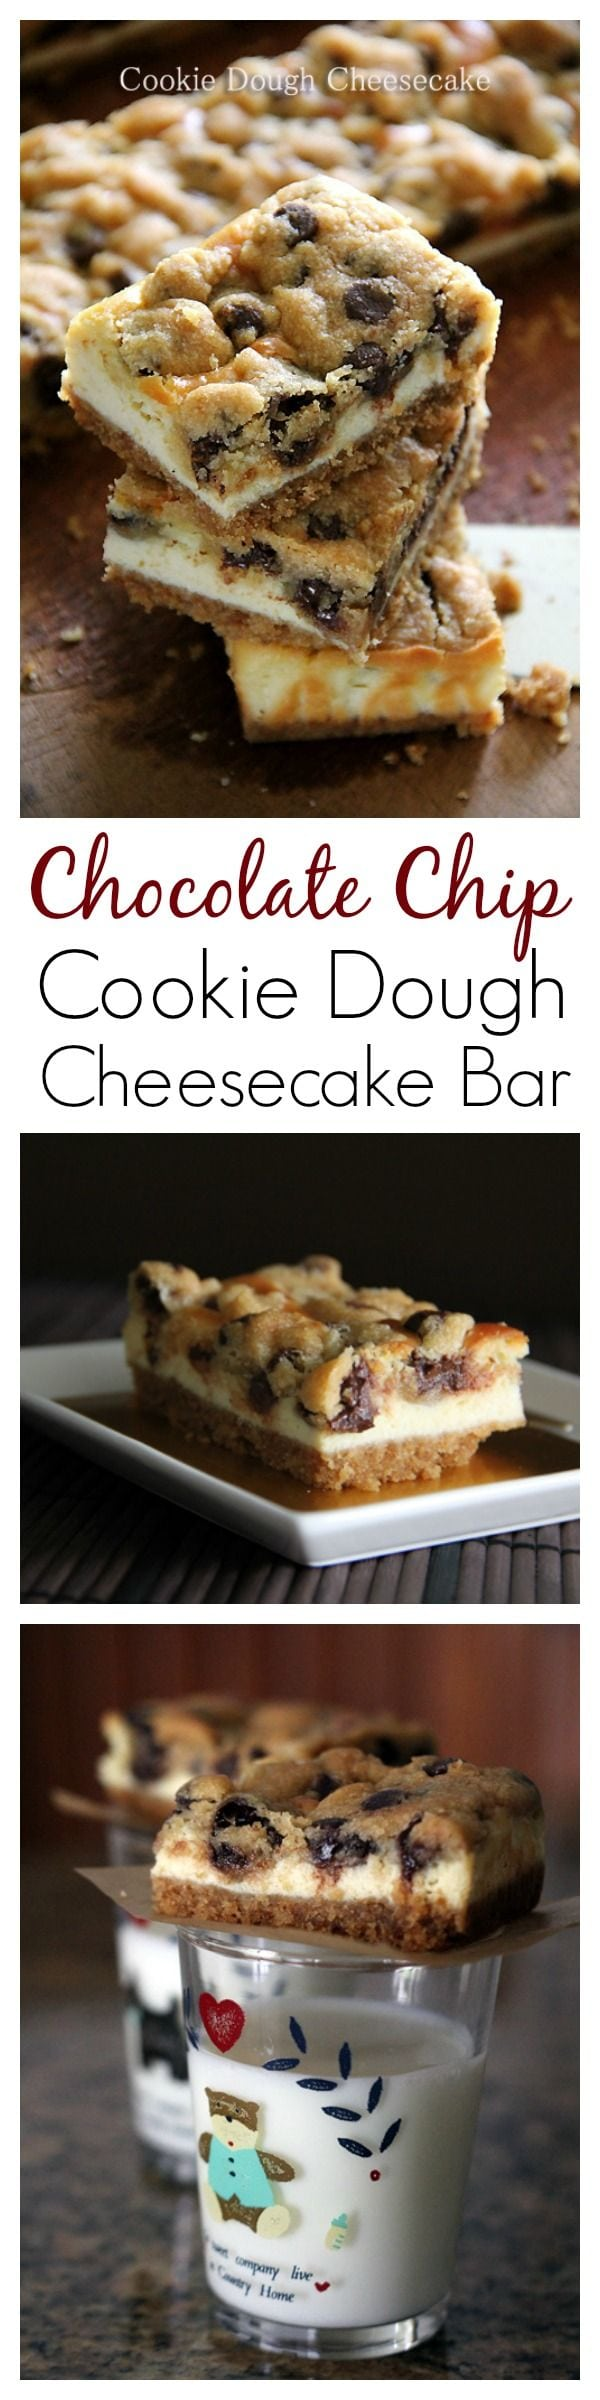 Chocolate Chip Cookie Dough Cheesecake Bar - Rasa Malaysia